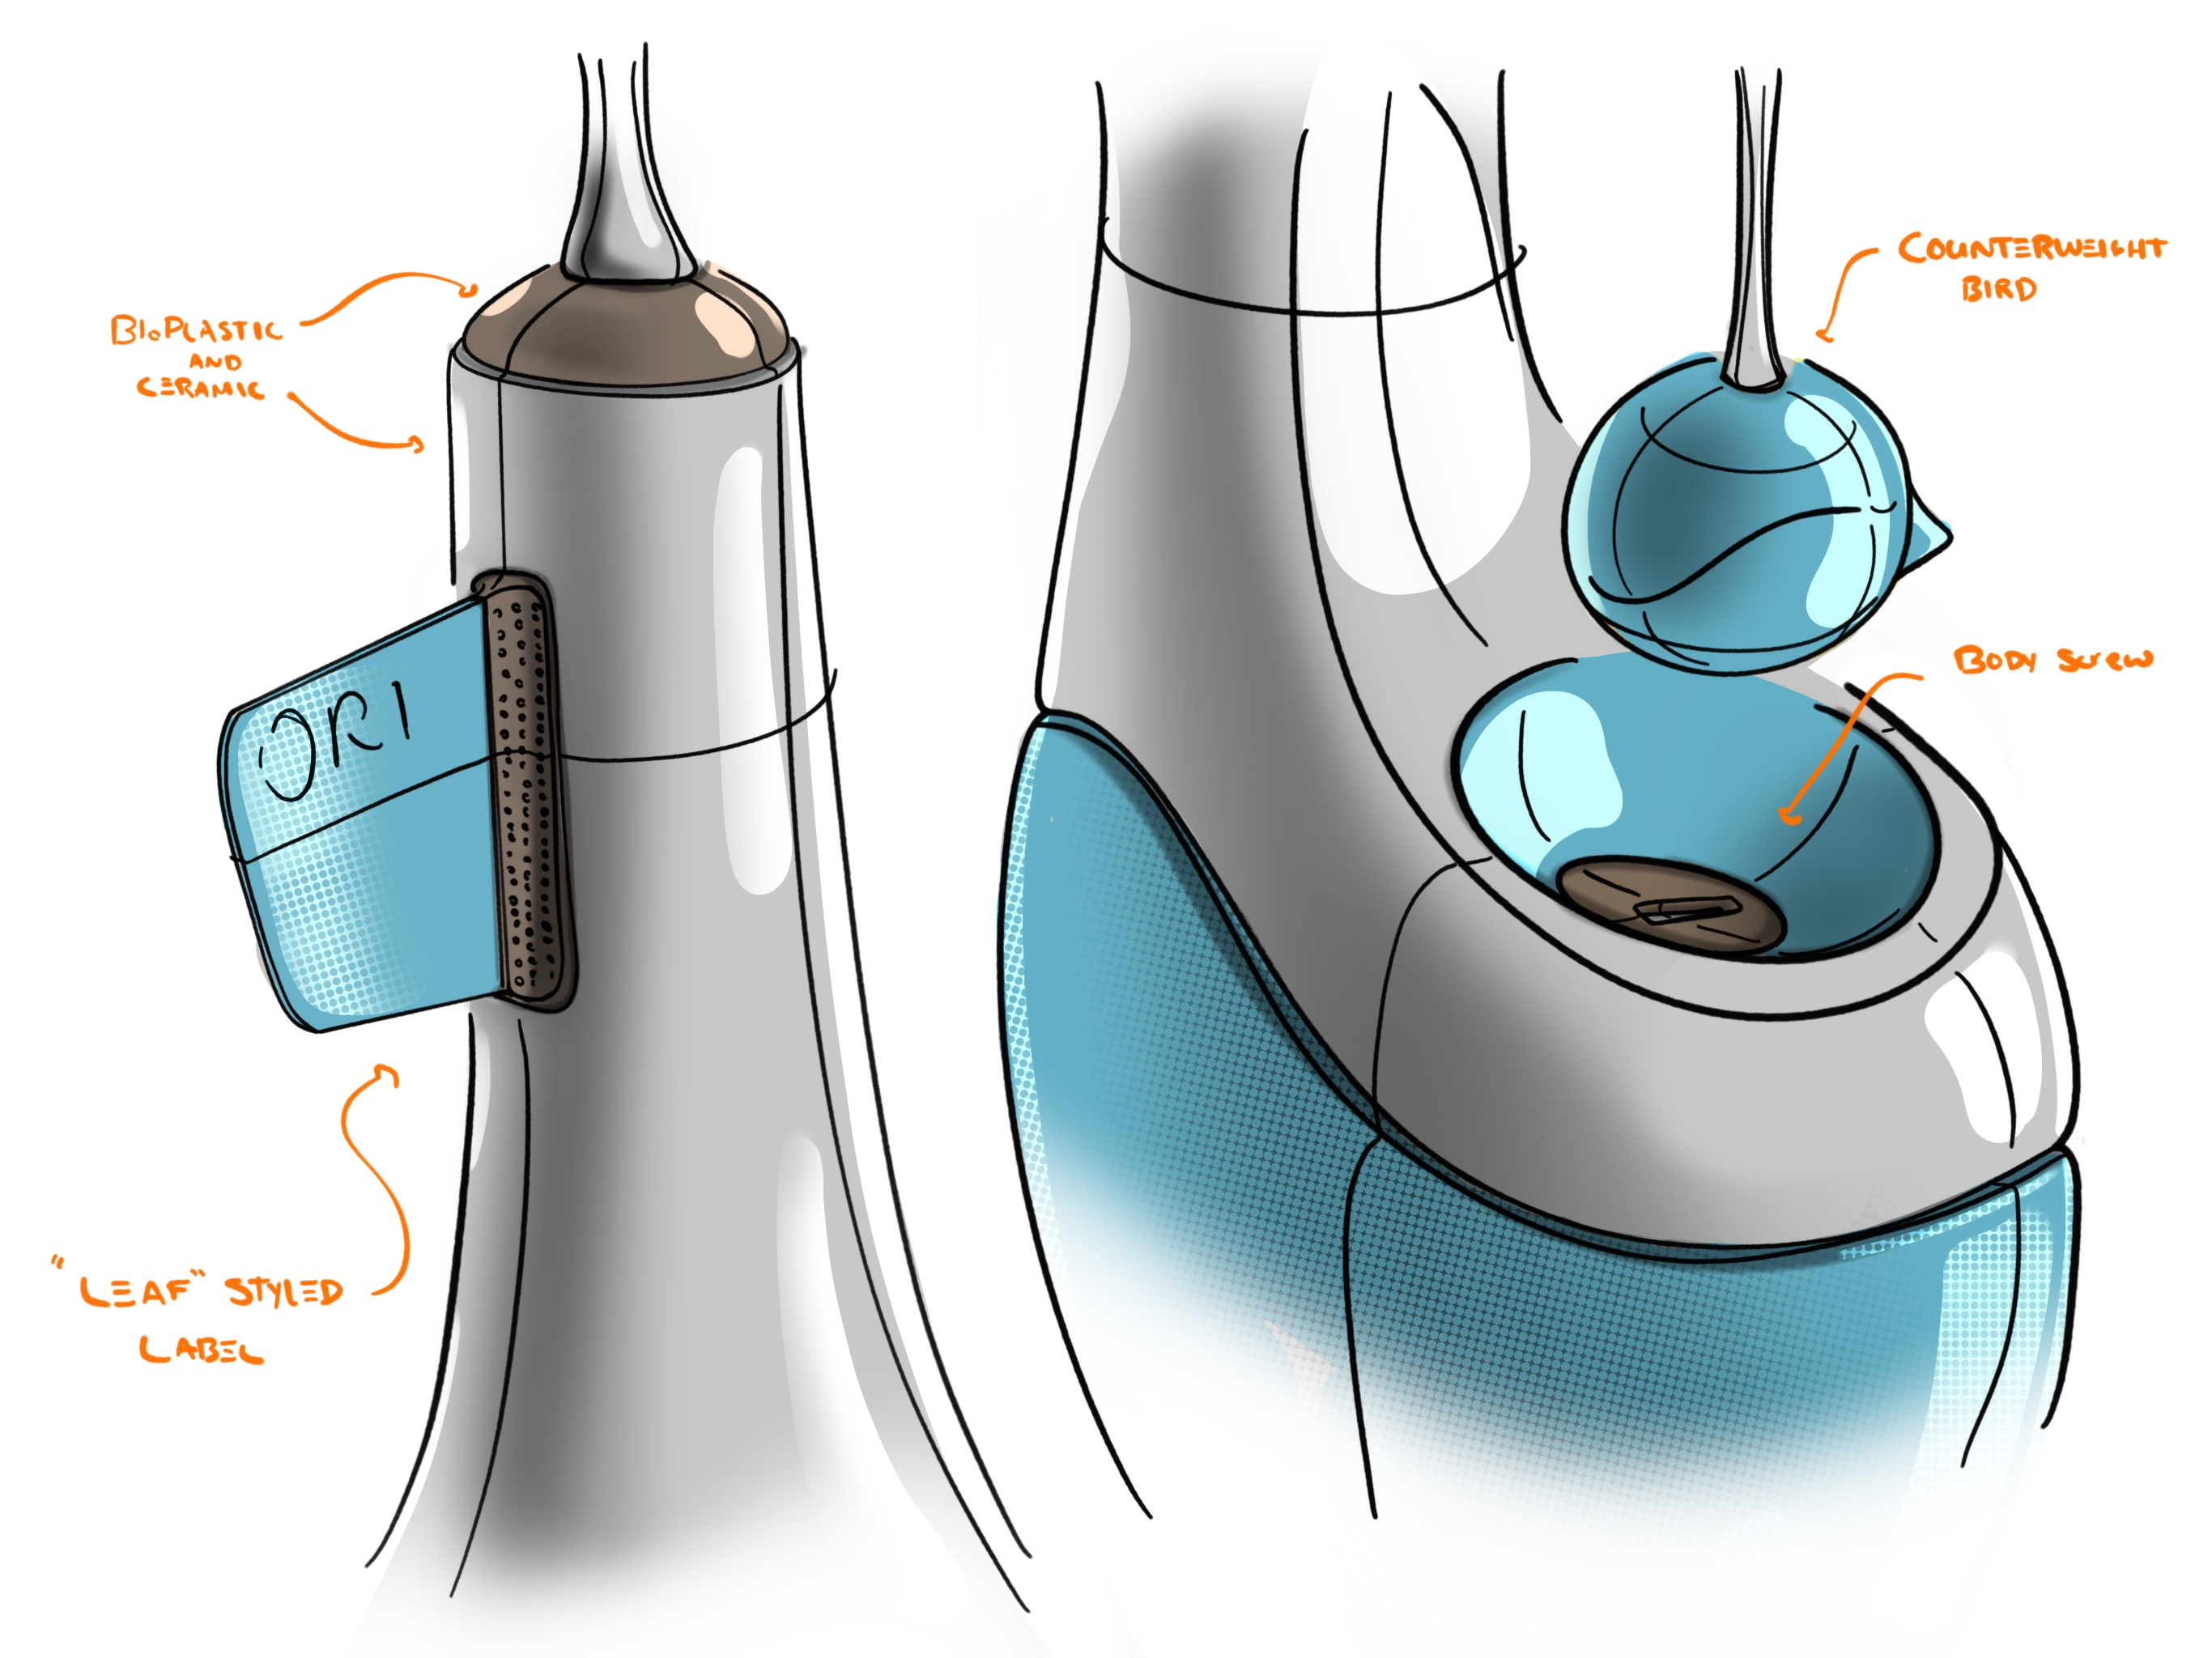 End phase sketches that show the finer details of the product.